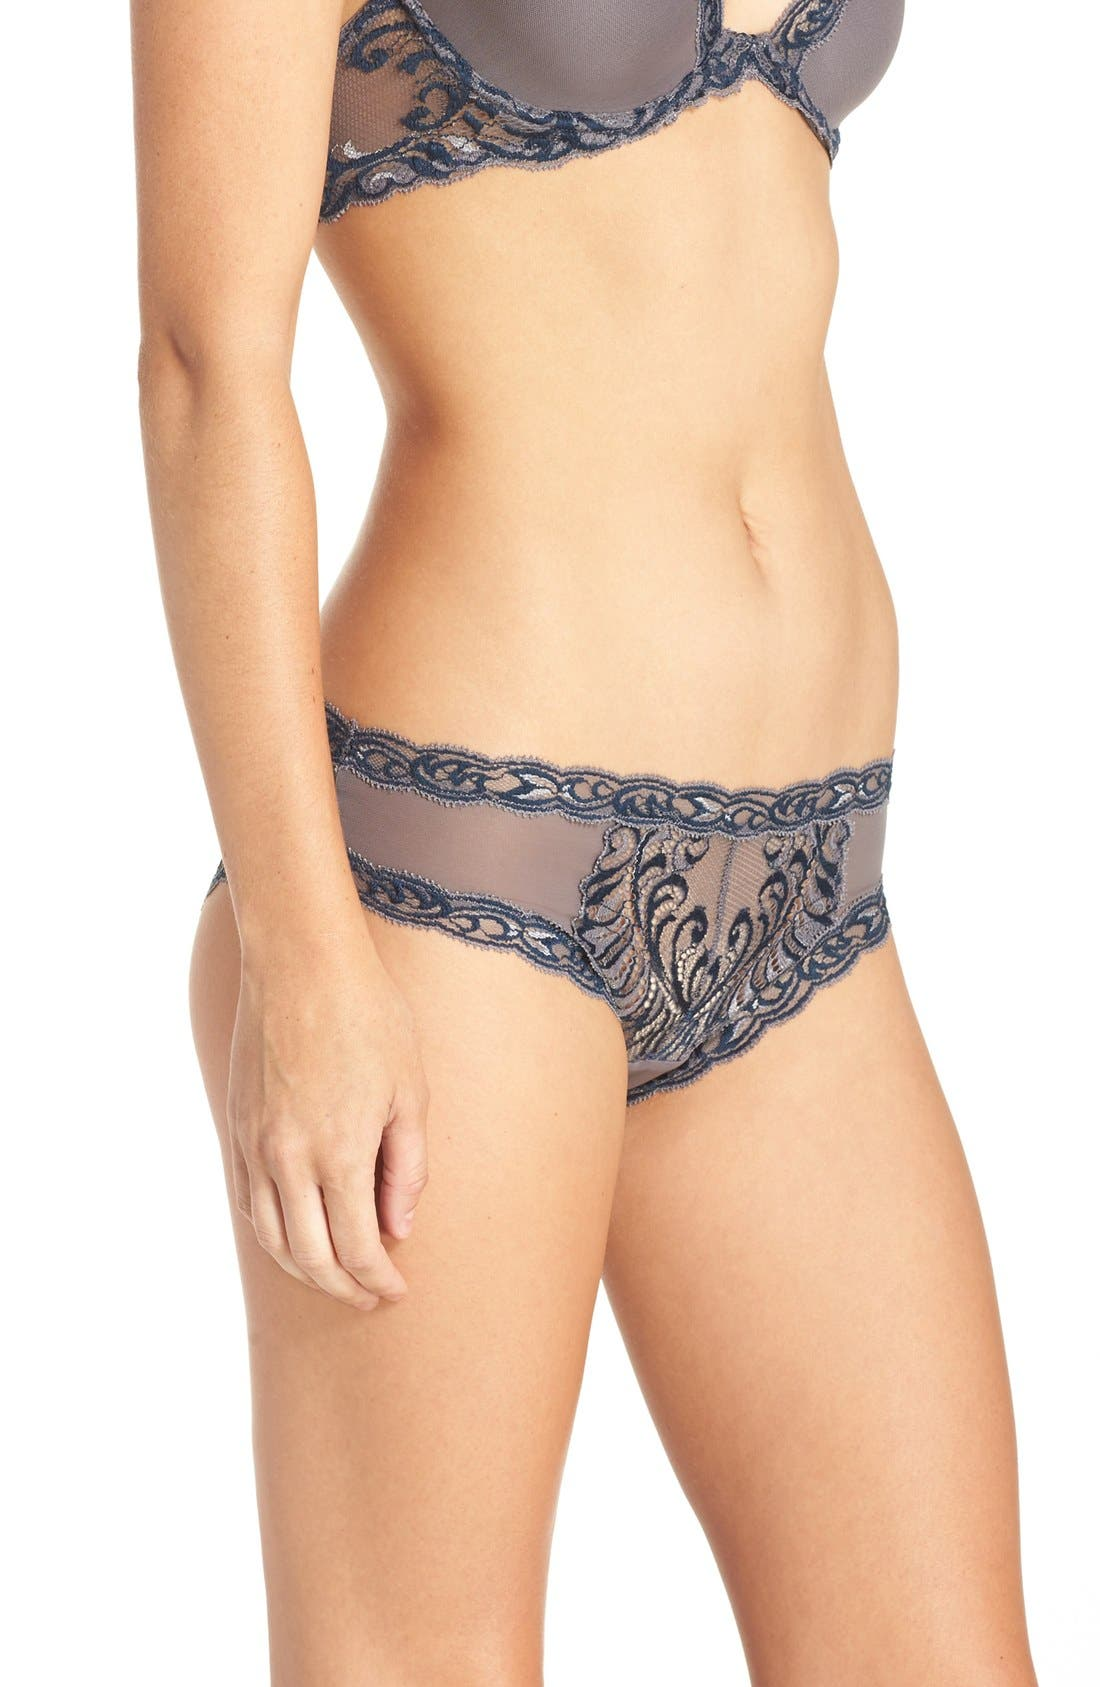 Feathers Hipster Briefs,                             Alternate thumbnail 133, color,